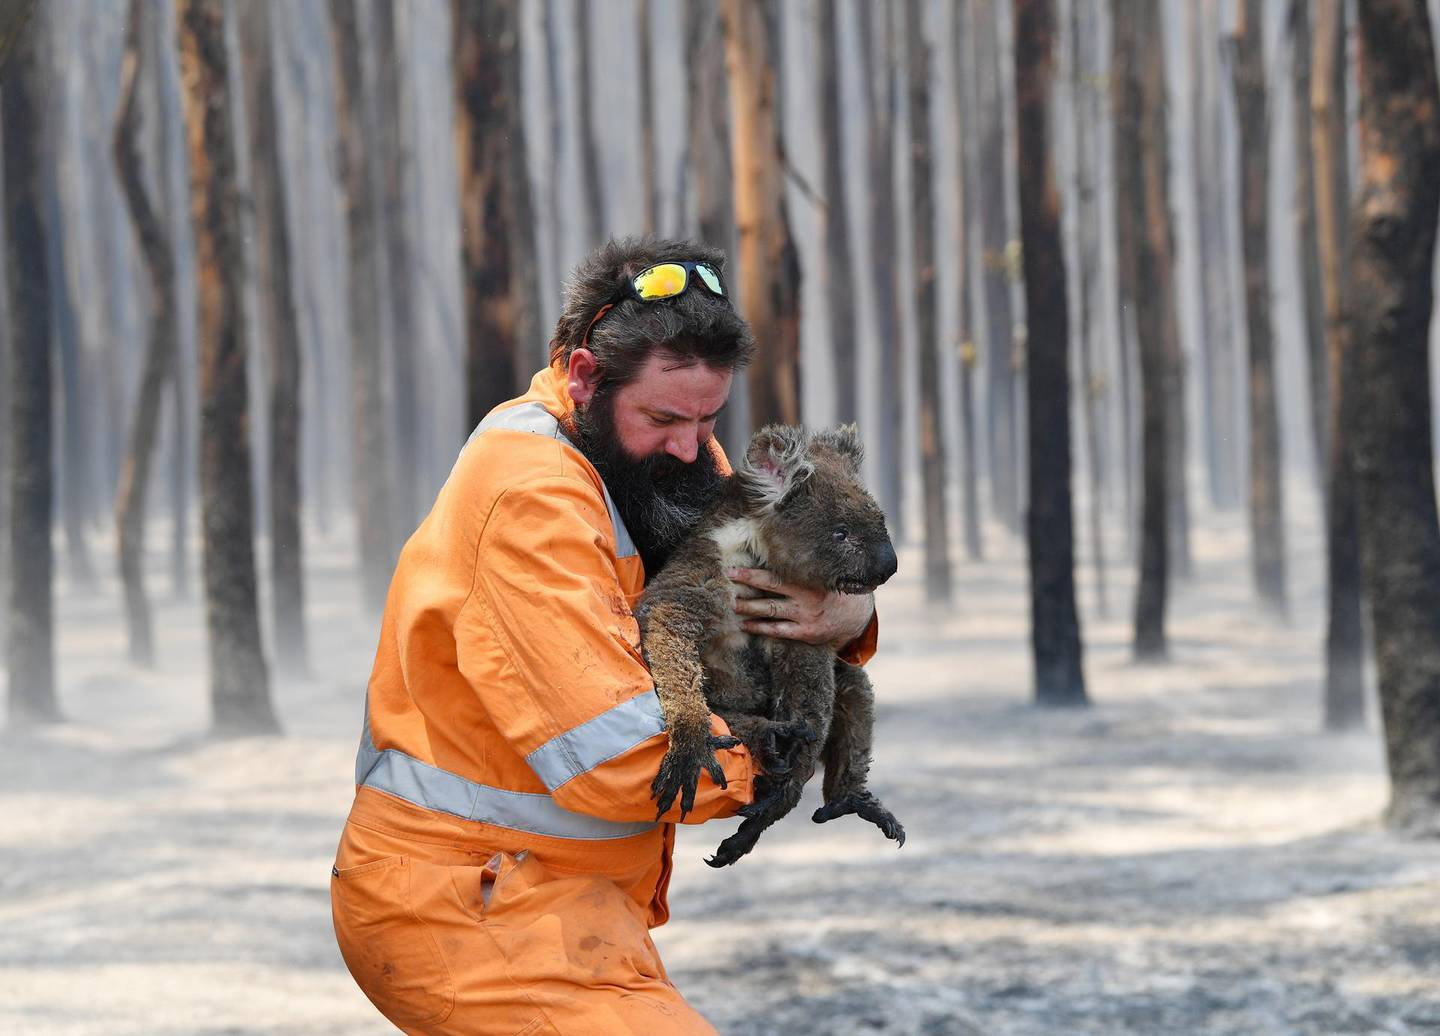 Adelaide wildlife rescuer Simon Adamczyk is seen with a koala rescued at a burning forest near Cape Borda on Kangaroo Island, southwest of Adelaide, Australia, January 7, 2020.   AAP Image/David Mariuz/via REUTERS    ATTENTION EDITORS - THIS IMAGE WAS PROVIDED BY A THIRD PARTY. NO RESALES. NO ARCHIVE. AUSTRALIA OUT. NEW ZEALAND OUT.